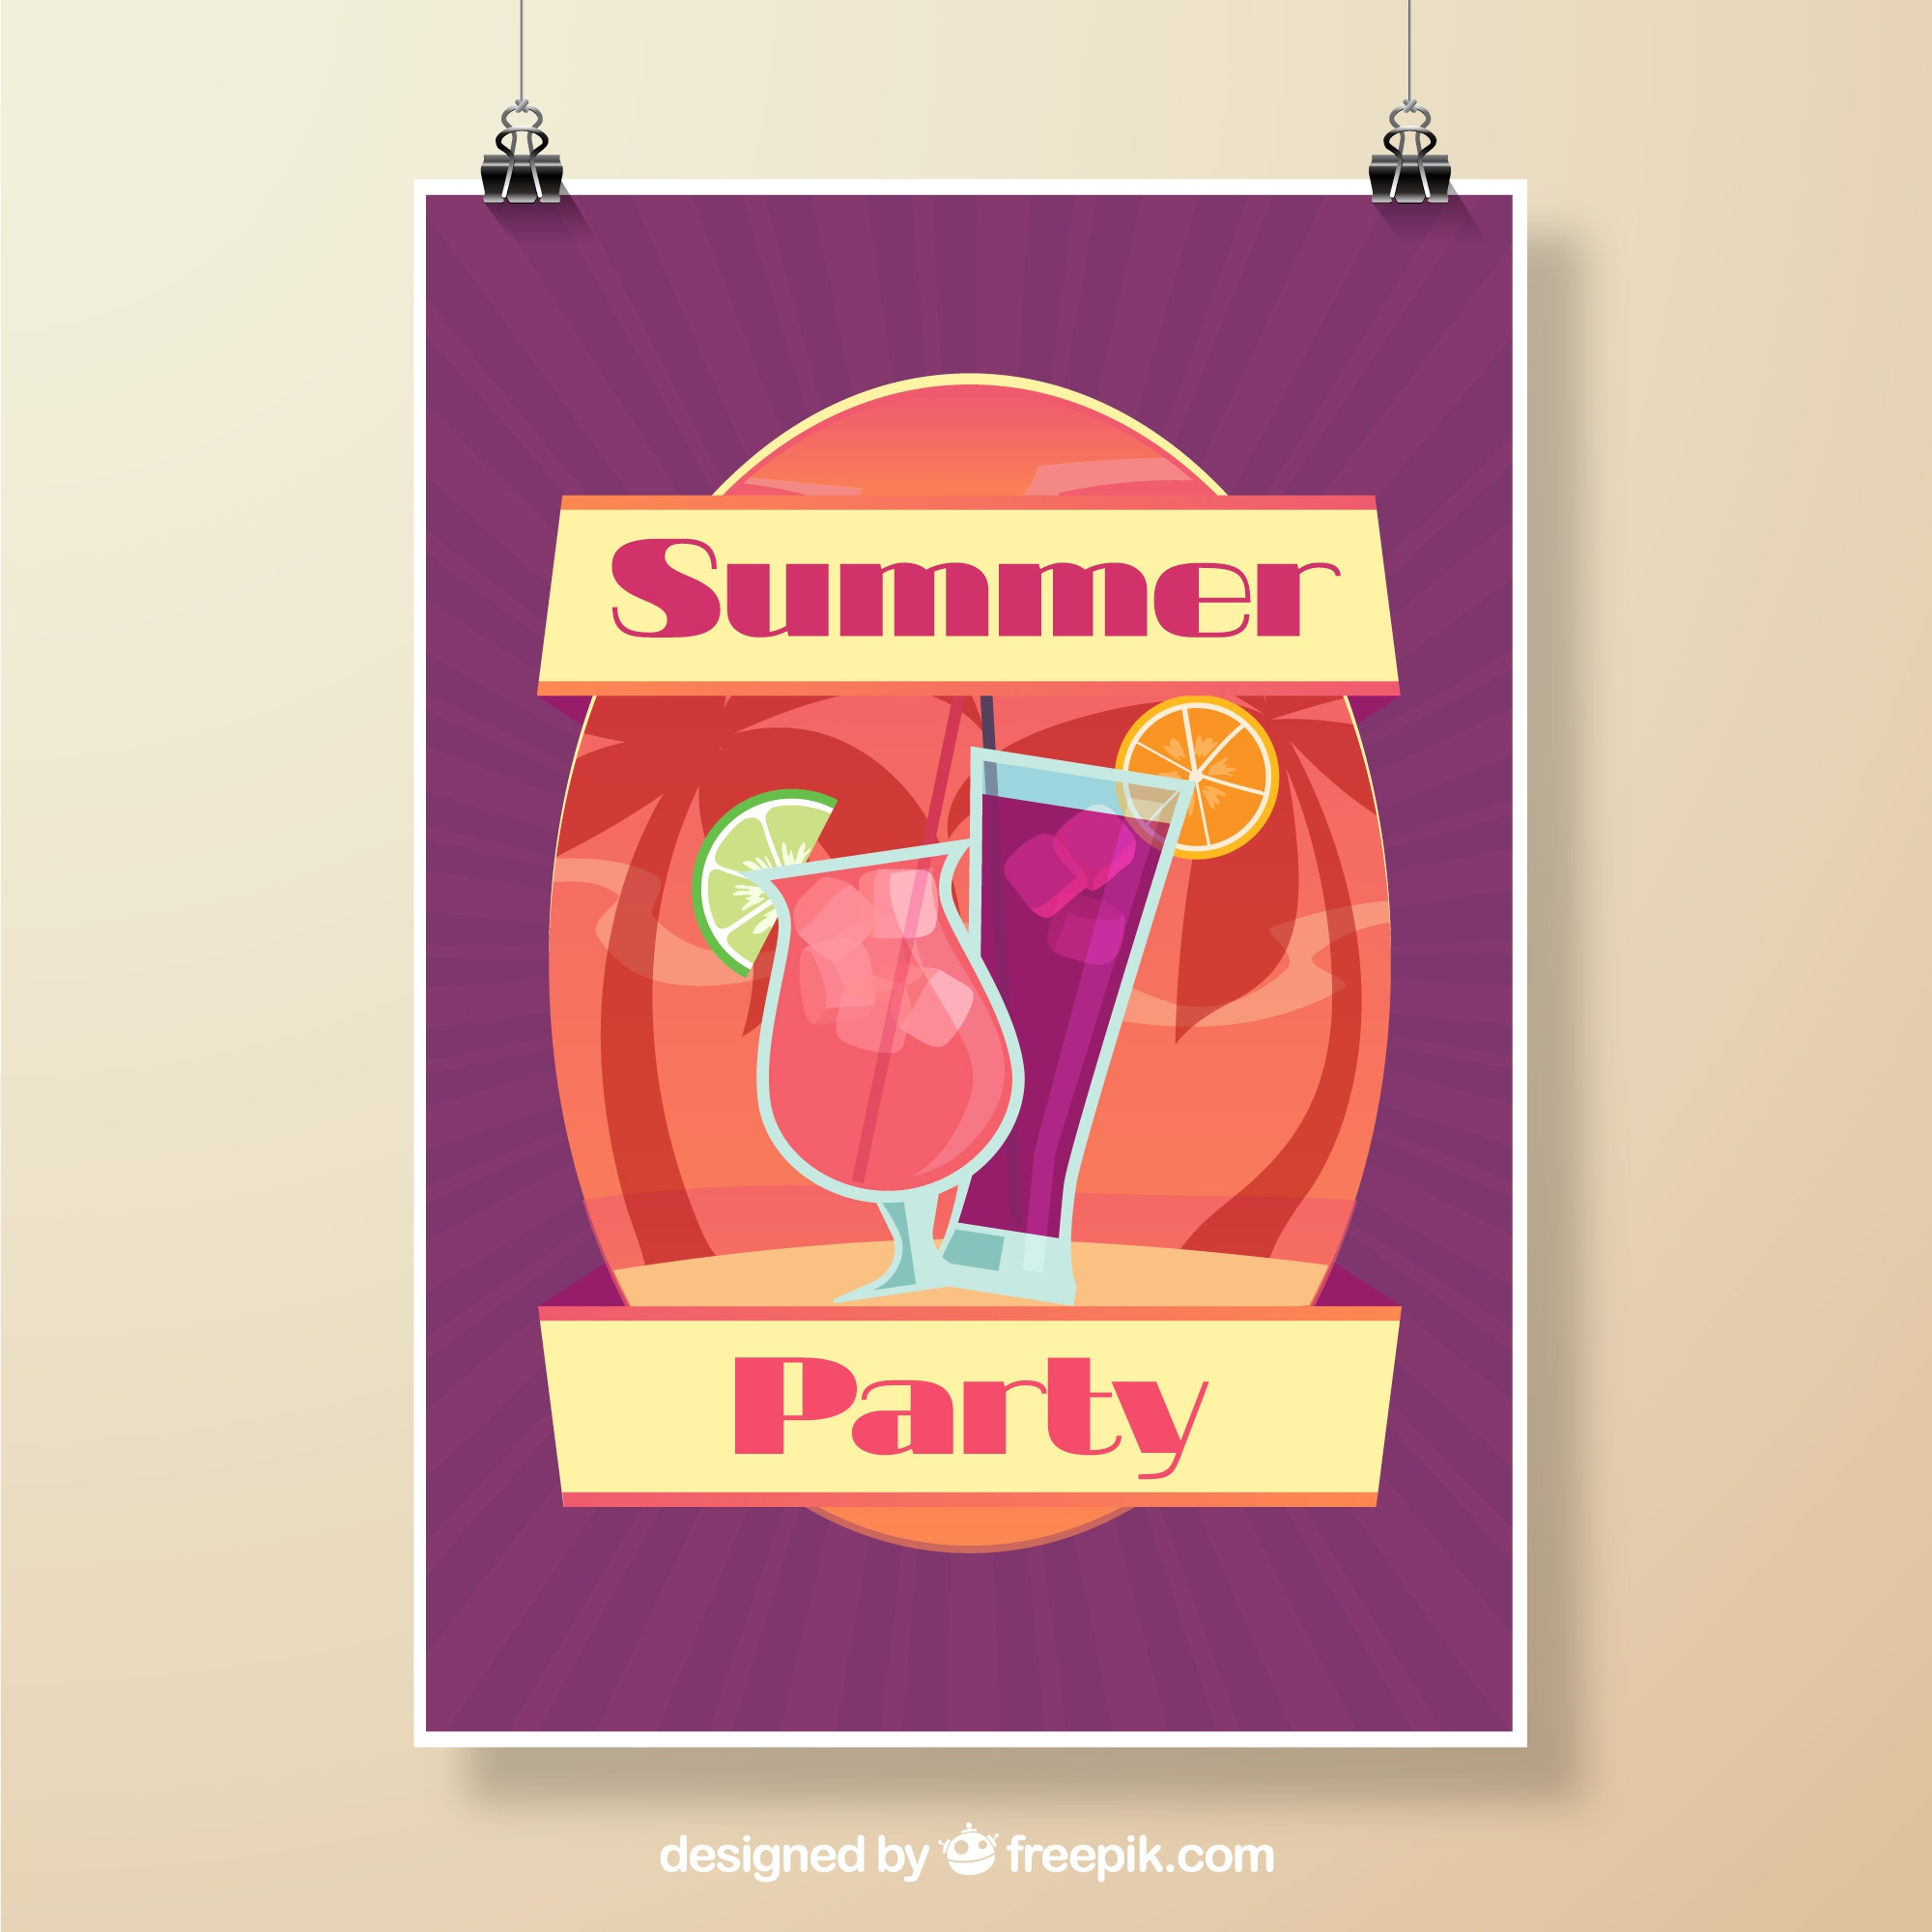 Summer party poster purple design